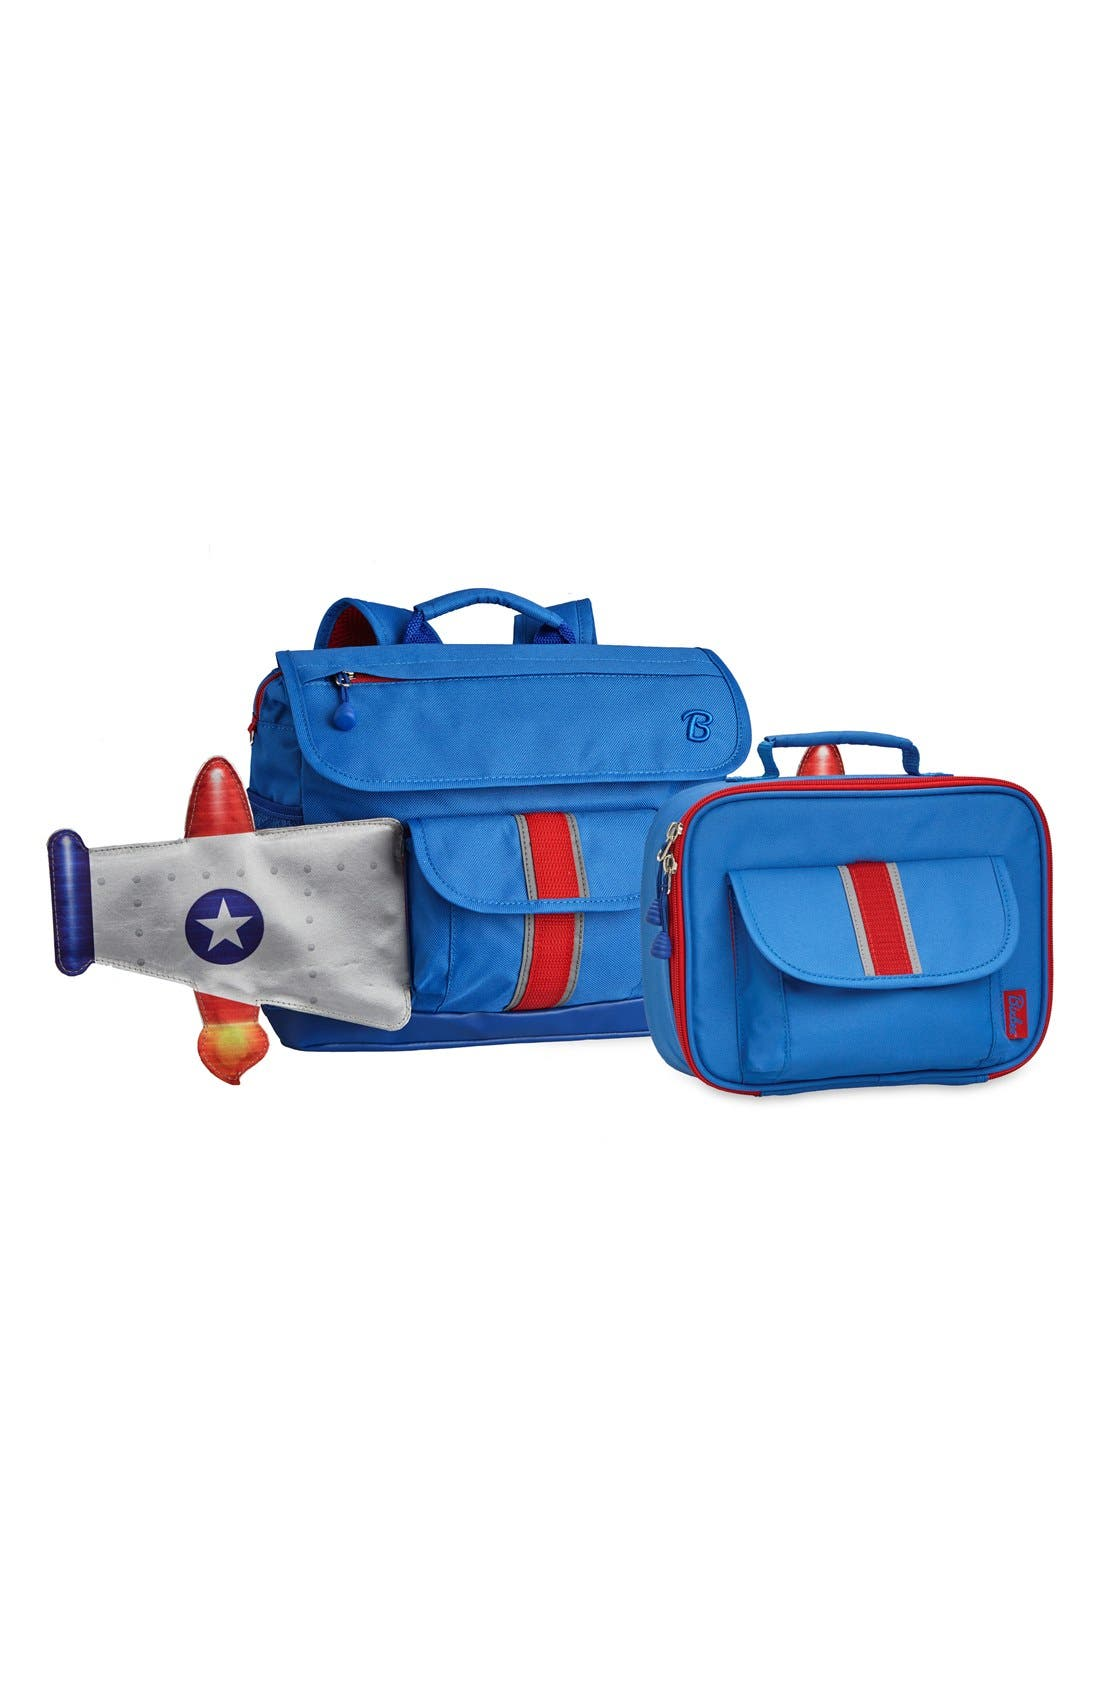 BIXBEE 'Rocketflyer' Backpack & Lunchbox